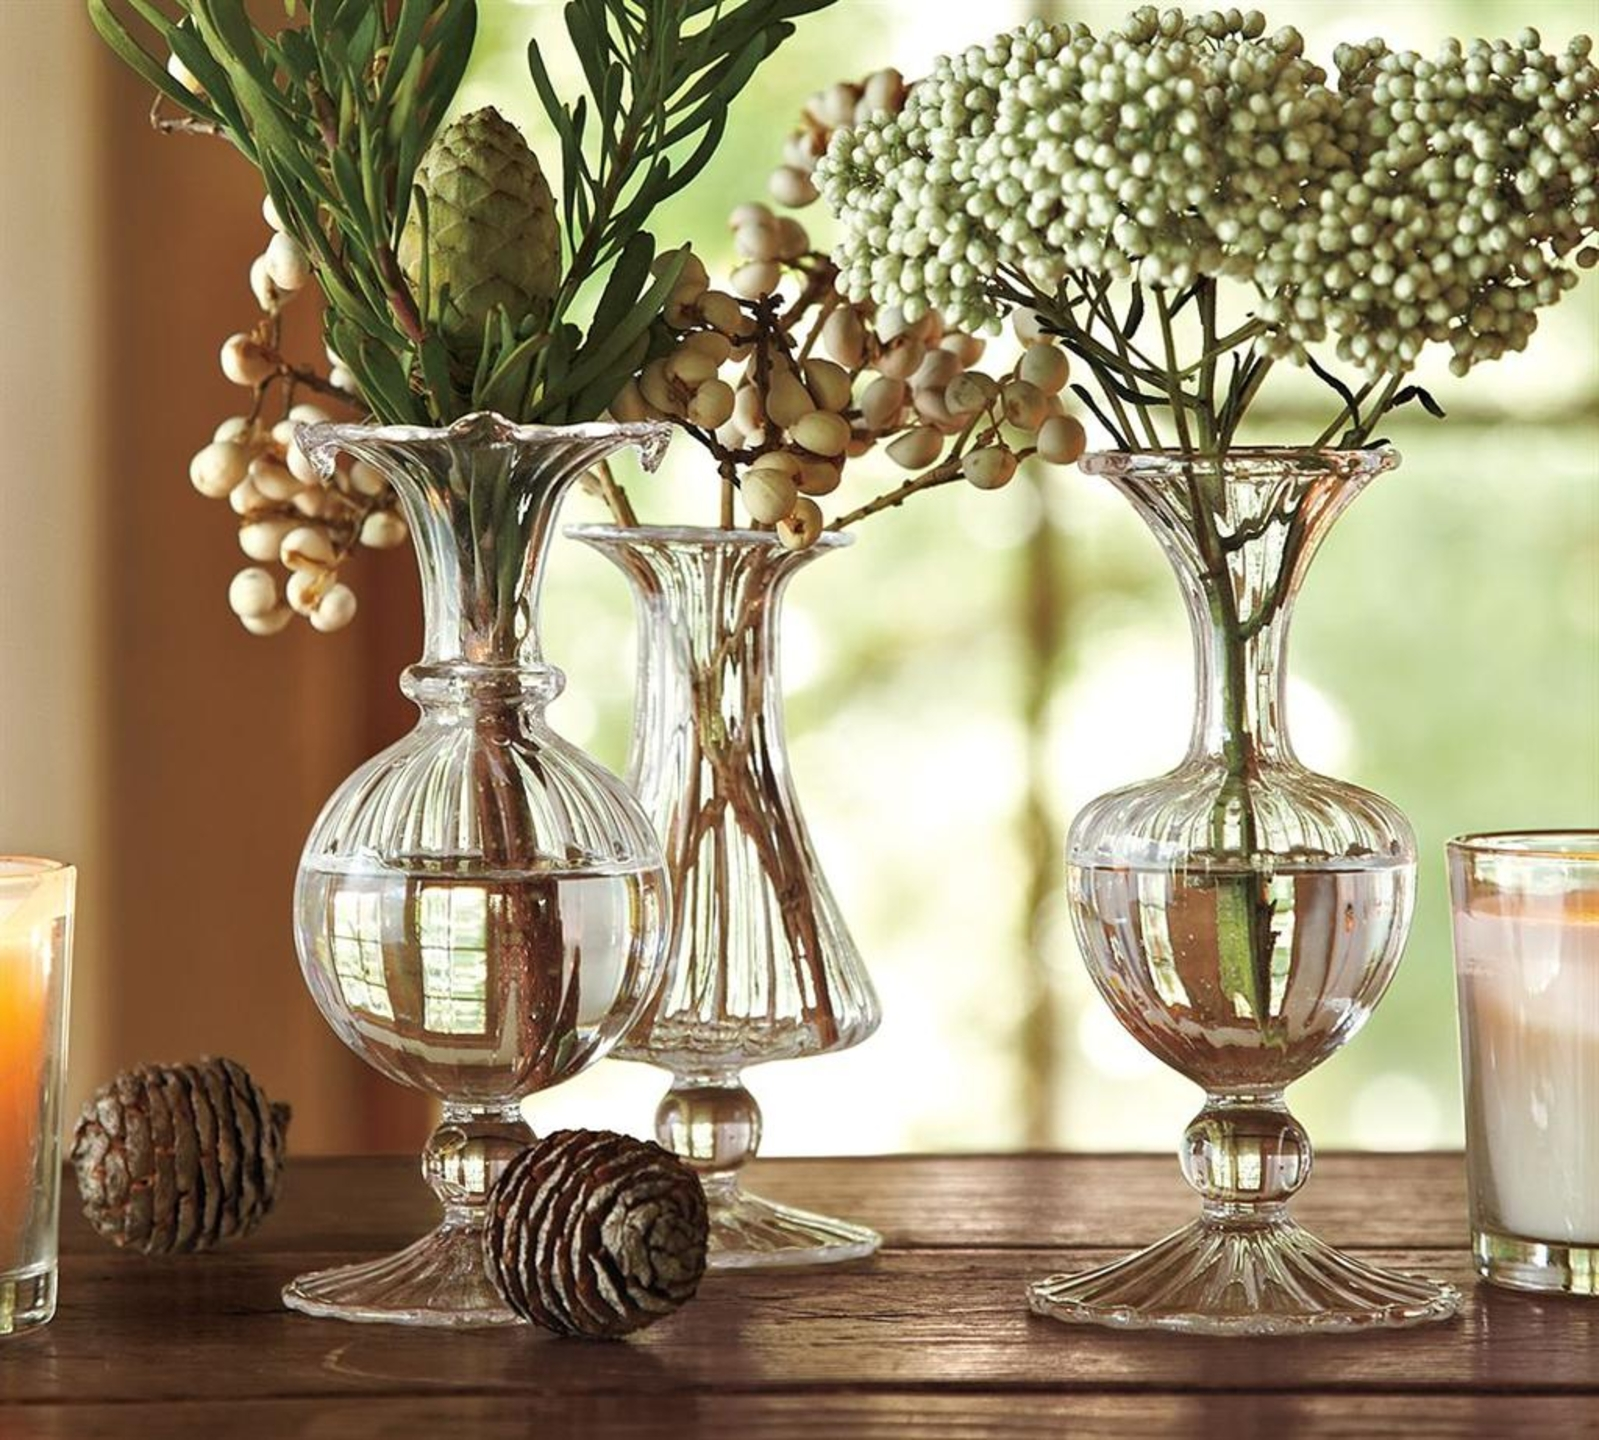 Xmas Decor And Decorations For Your Home